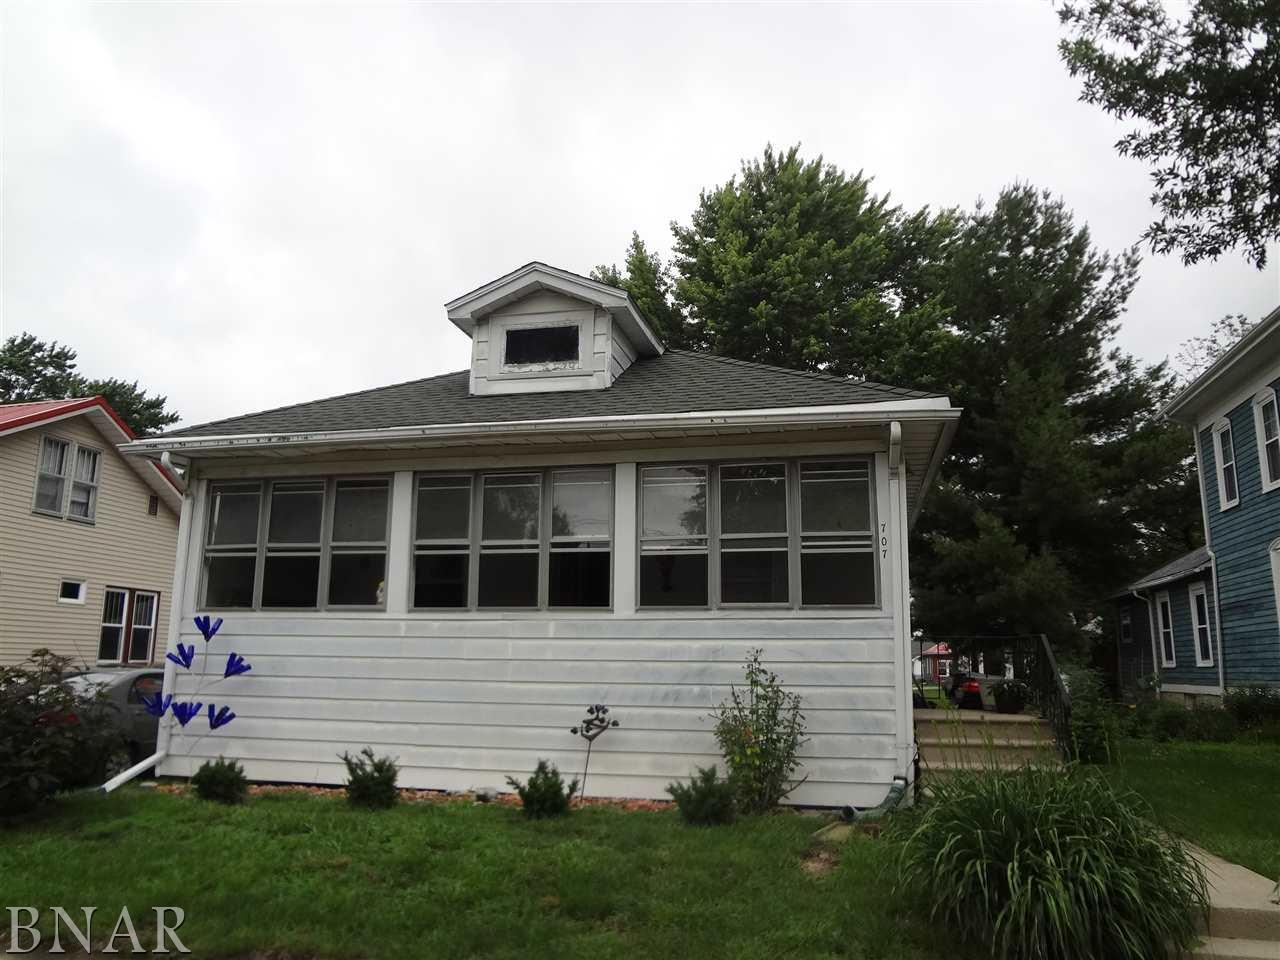 707 W South Clinton, IL 61727